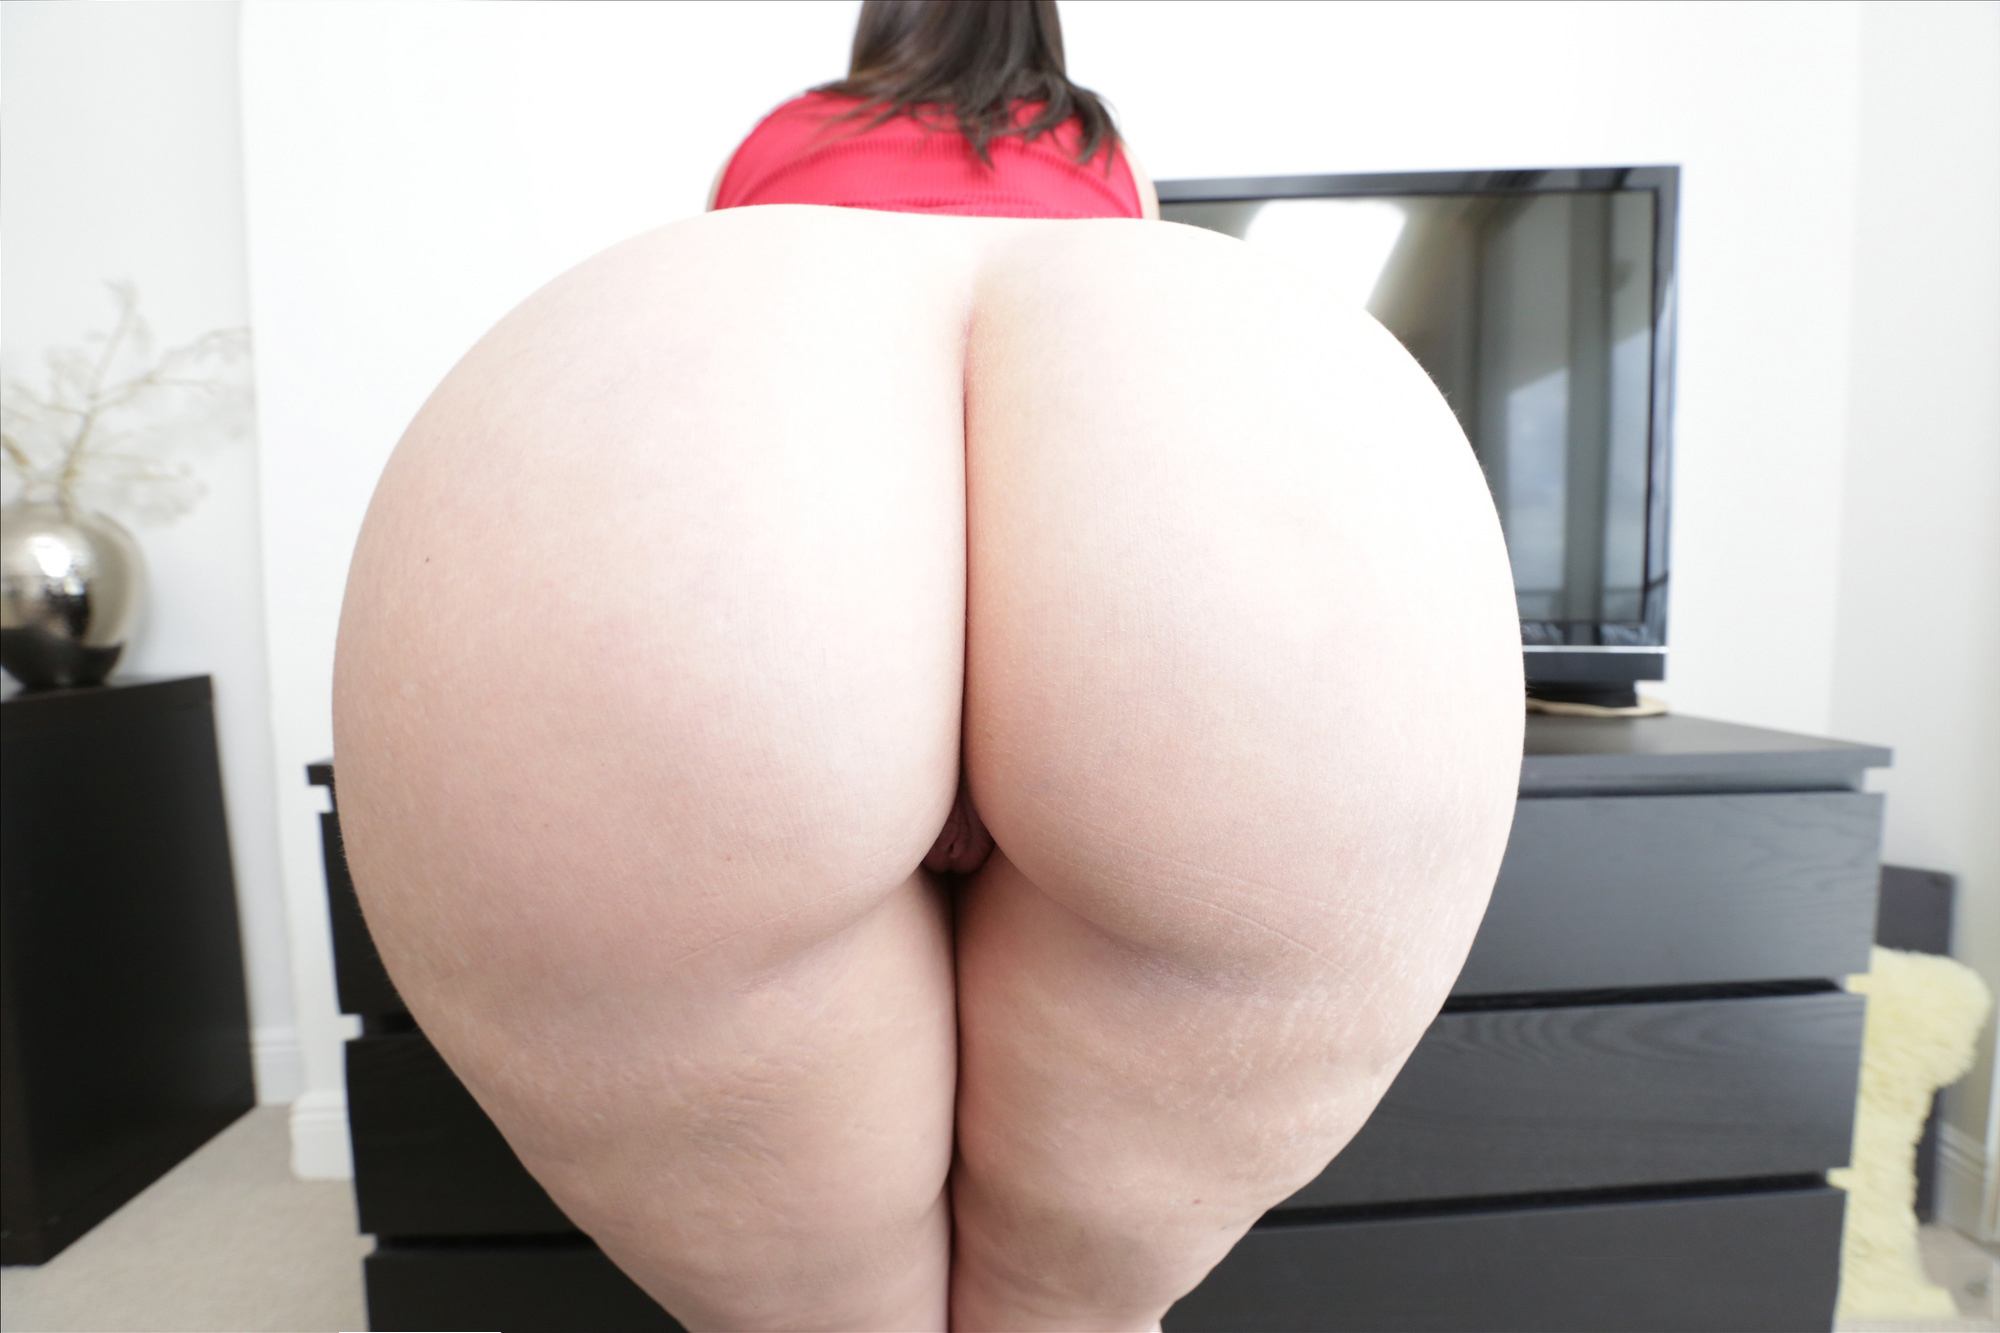 big white ass virgo peridot on gotporn (4245557)